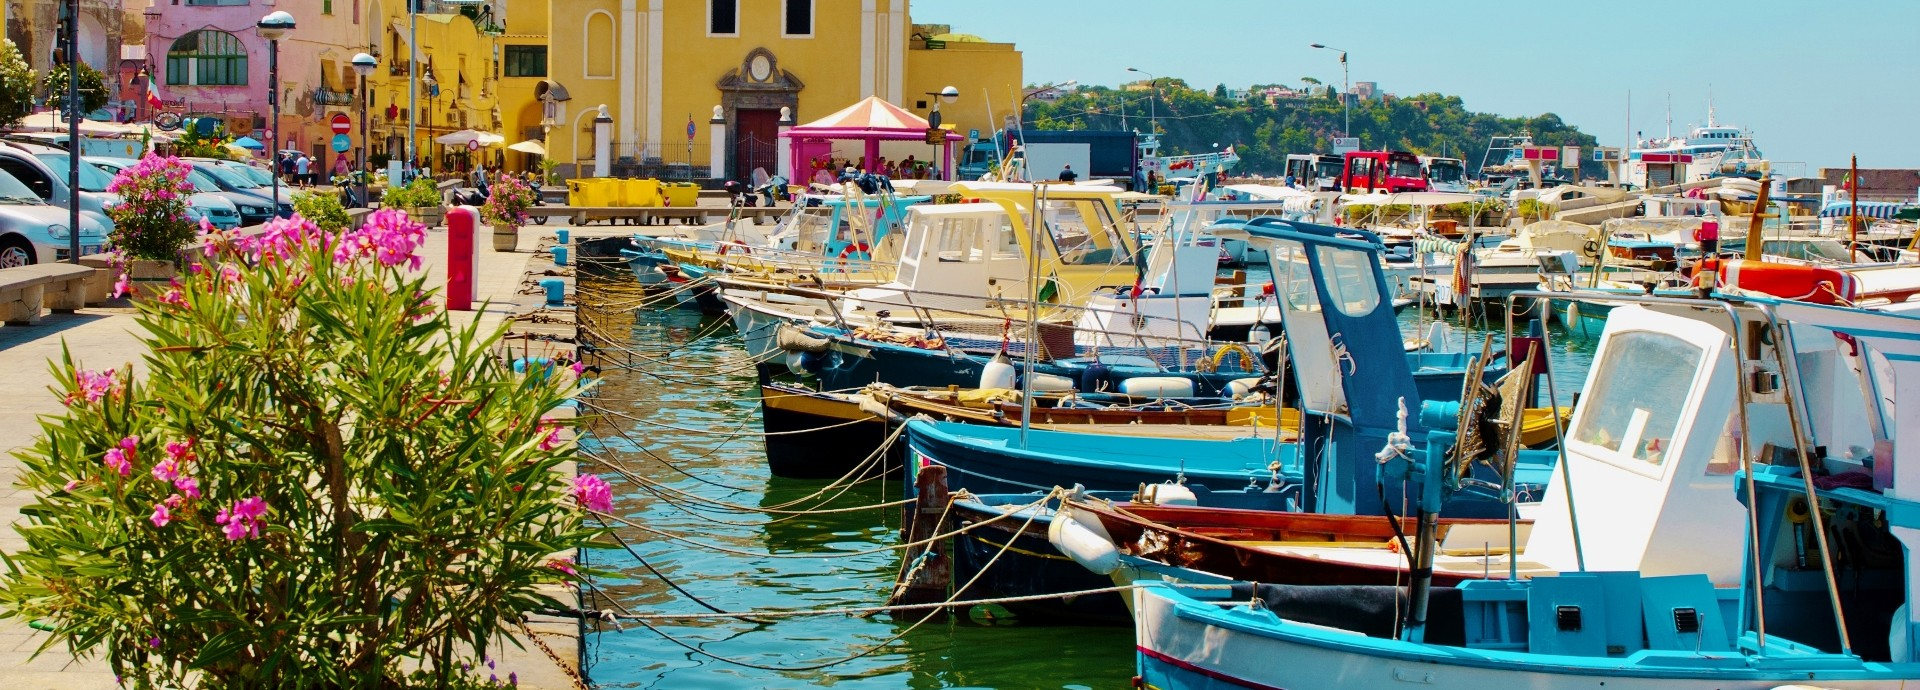 Fishing boats on Procida Island in the Bay of Naples